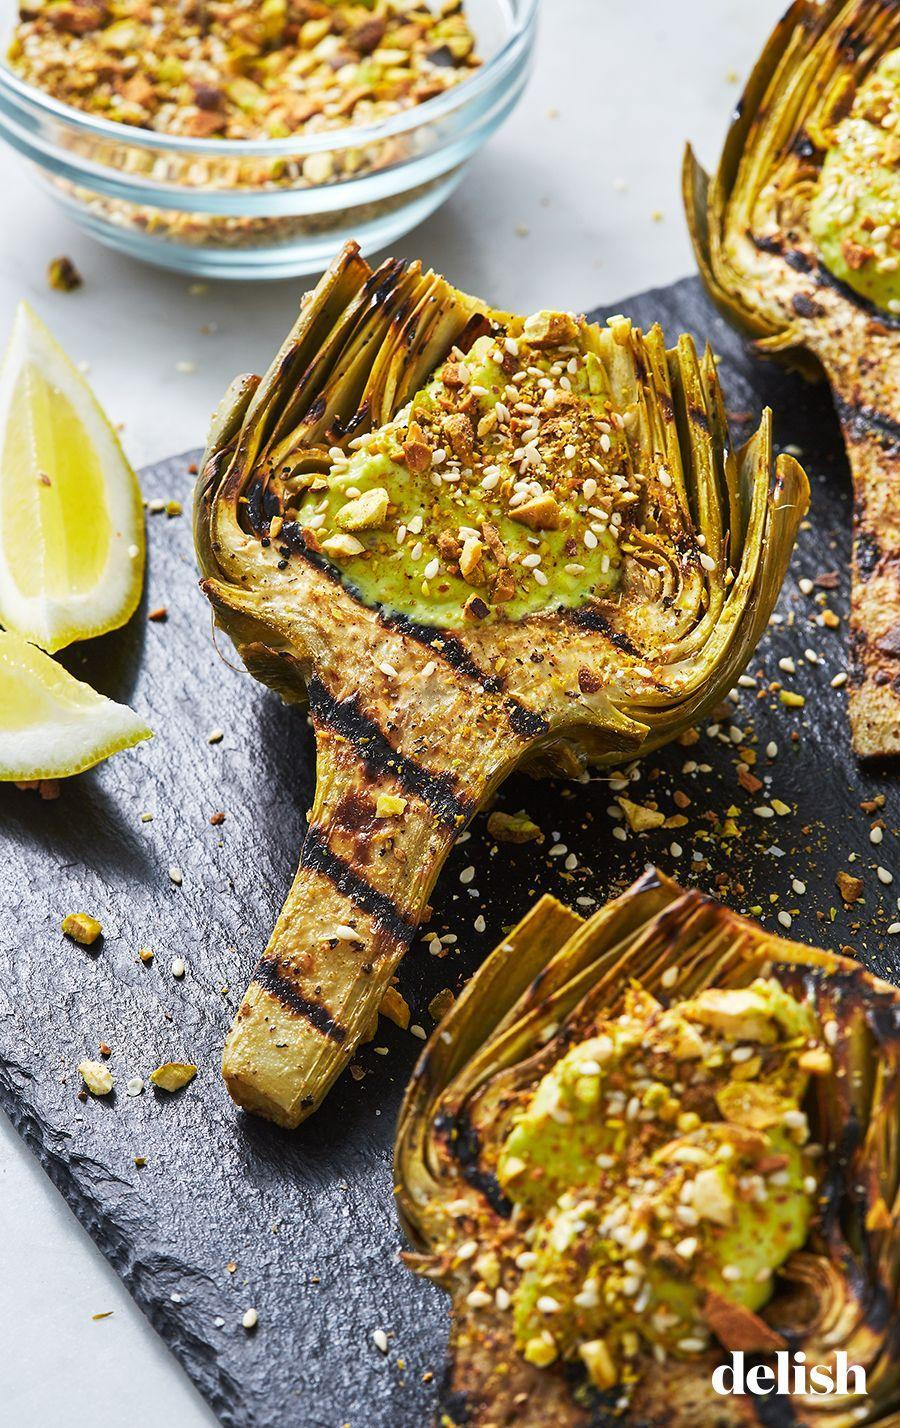 """<p>You'll be scooping out every last bite.</p><p>Get the recipe from <a href=""""https://www.delish.com/cooking/recipe-ideas/a27198662/grilled-artichoke-recipe/"""" rel=""""nofollow noopener"""" target=""""_blank"""" data-ylk=""""slk:Delish"""" class=""""link rapid-noclick-resp"""">Delish</a>. </p>"""